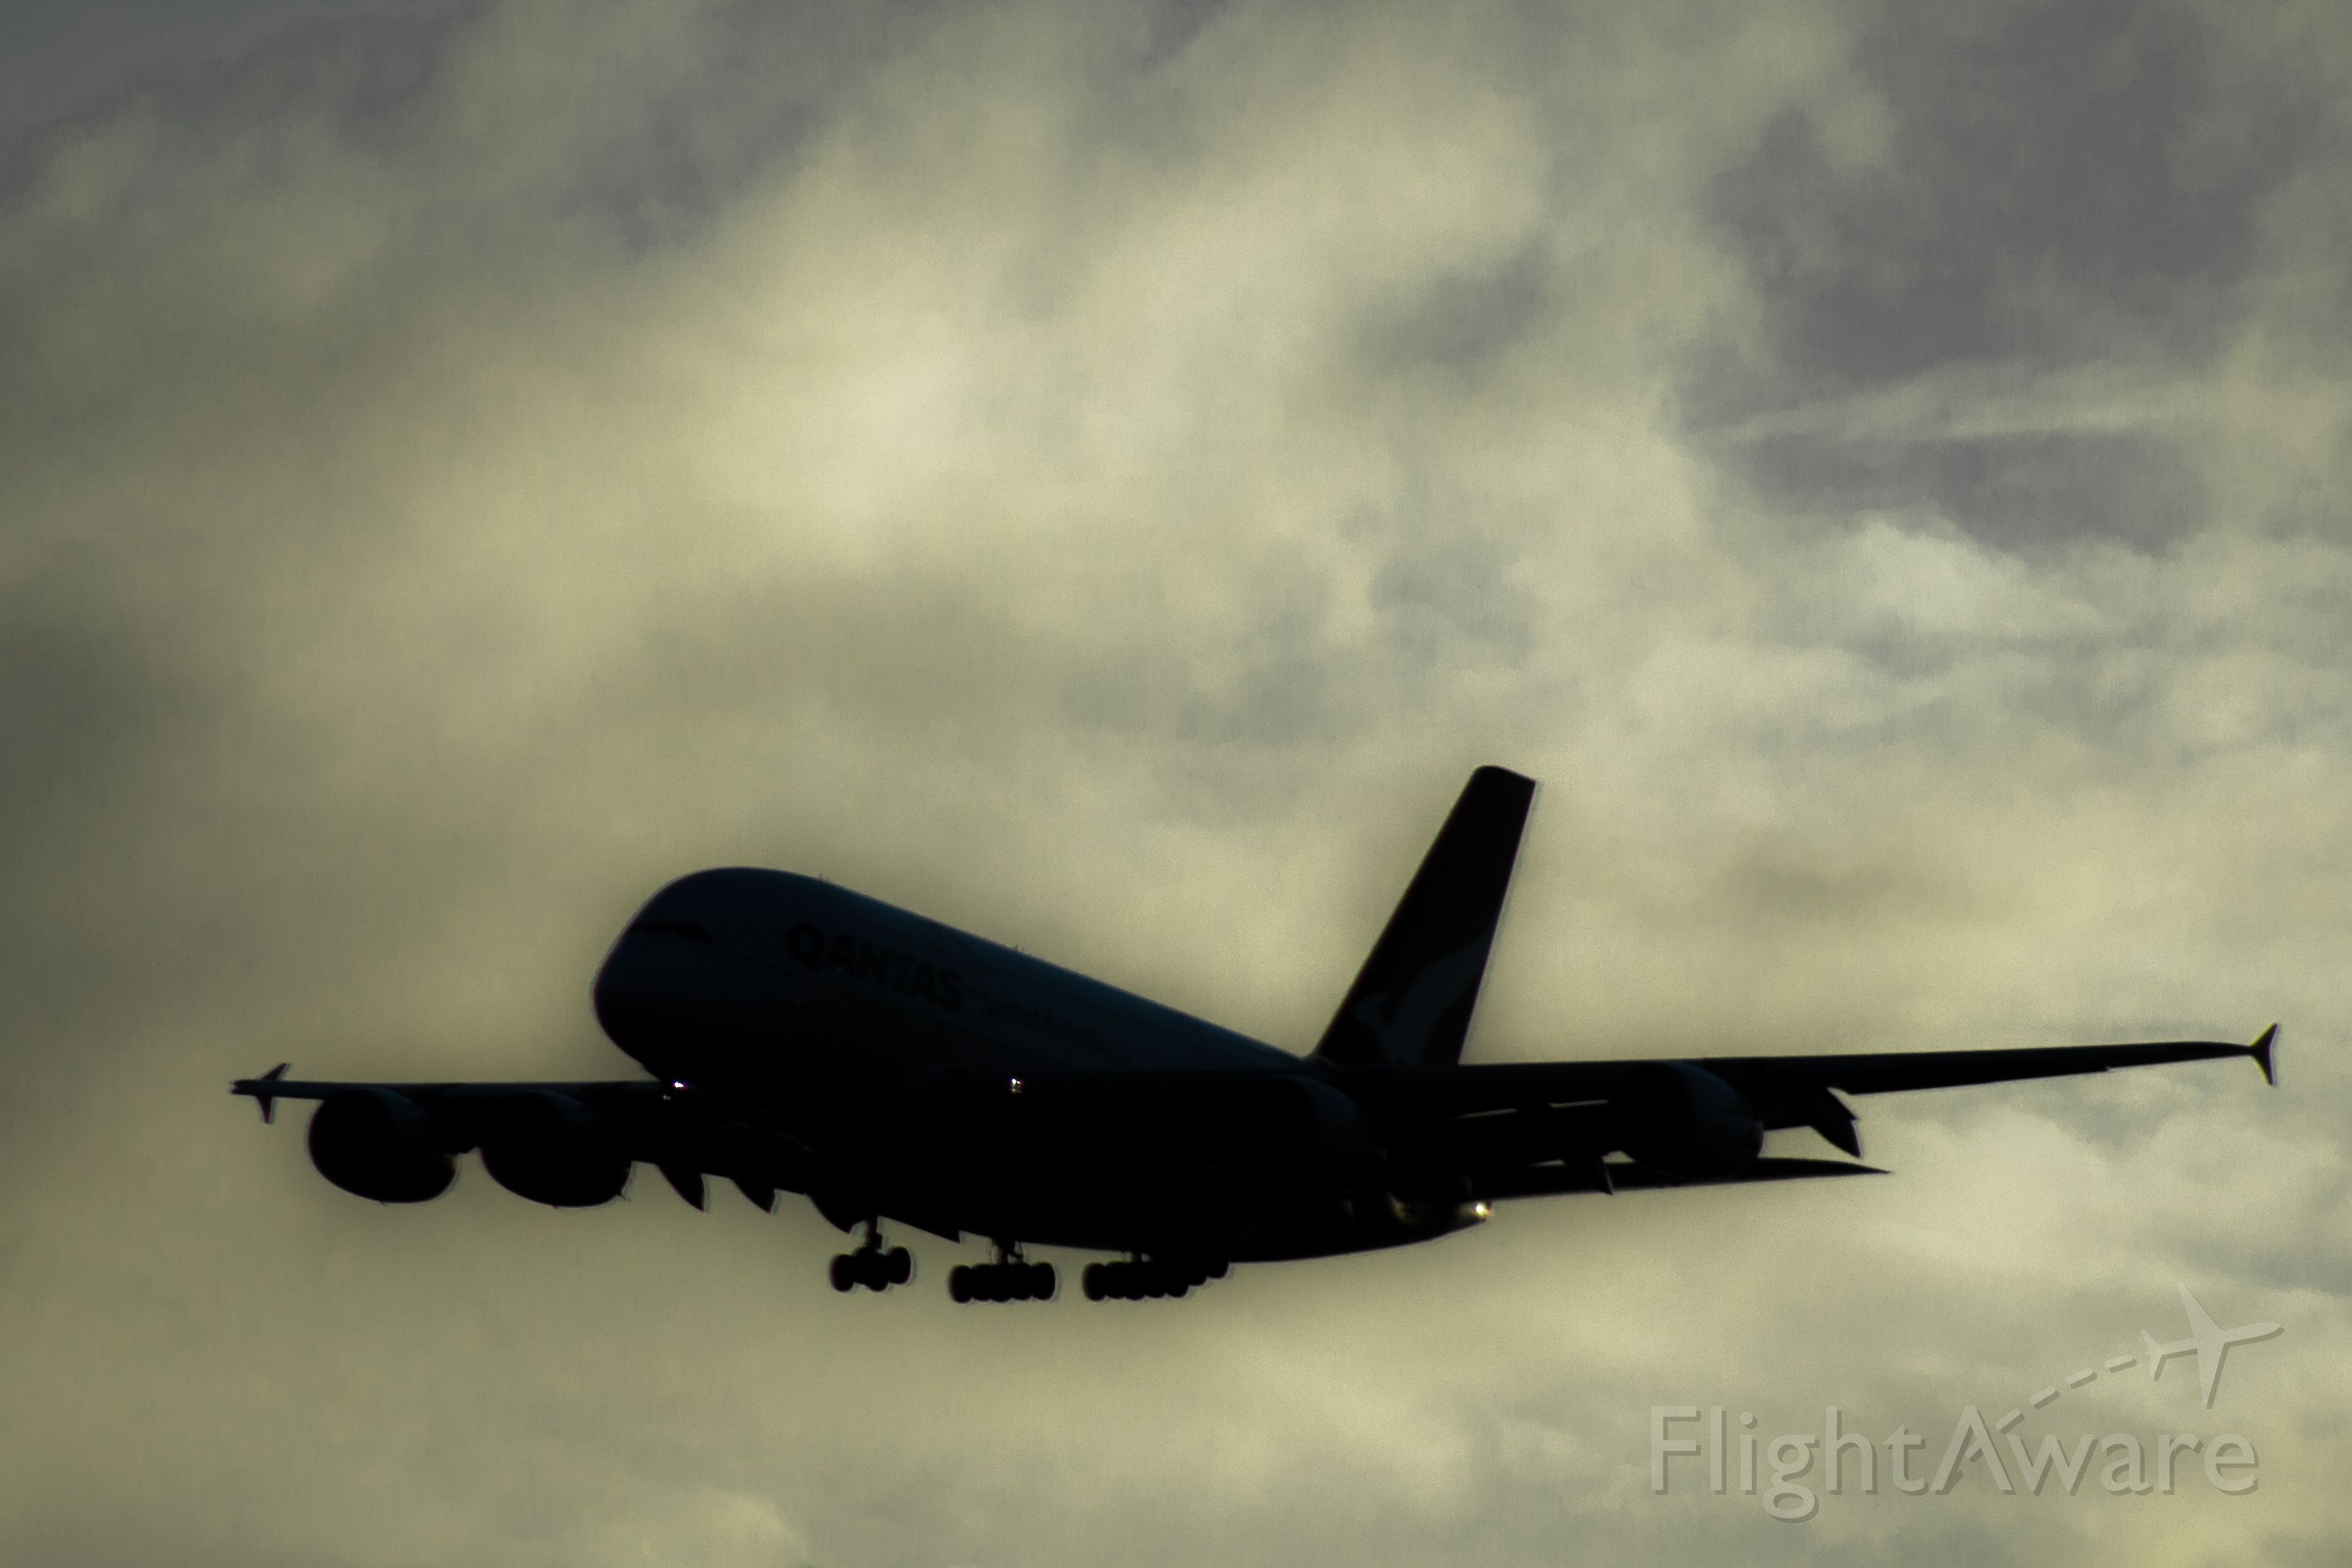 Airbus A380-800 — - Qantas flight arriving to LAX. Was able to take this image against a bright morning sky to make the silhouette.